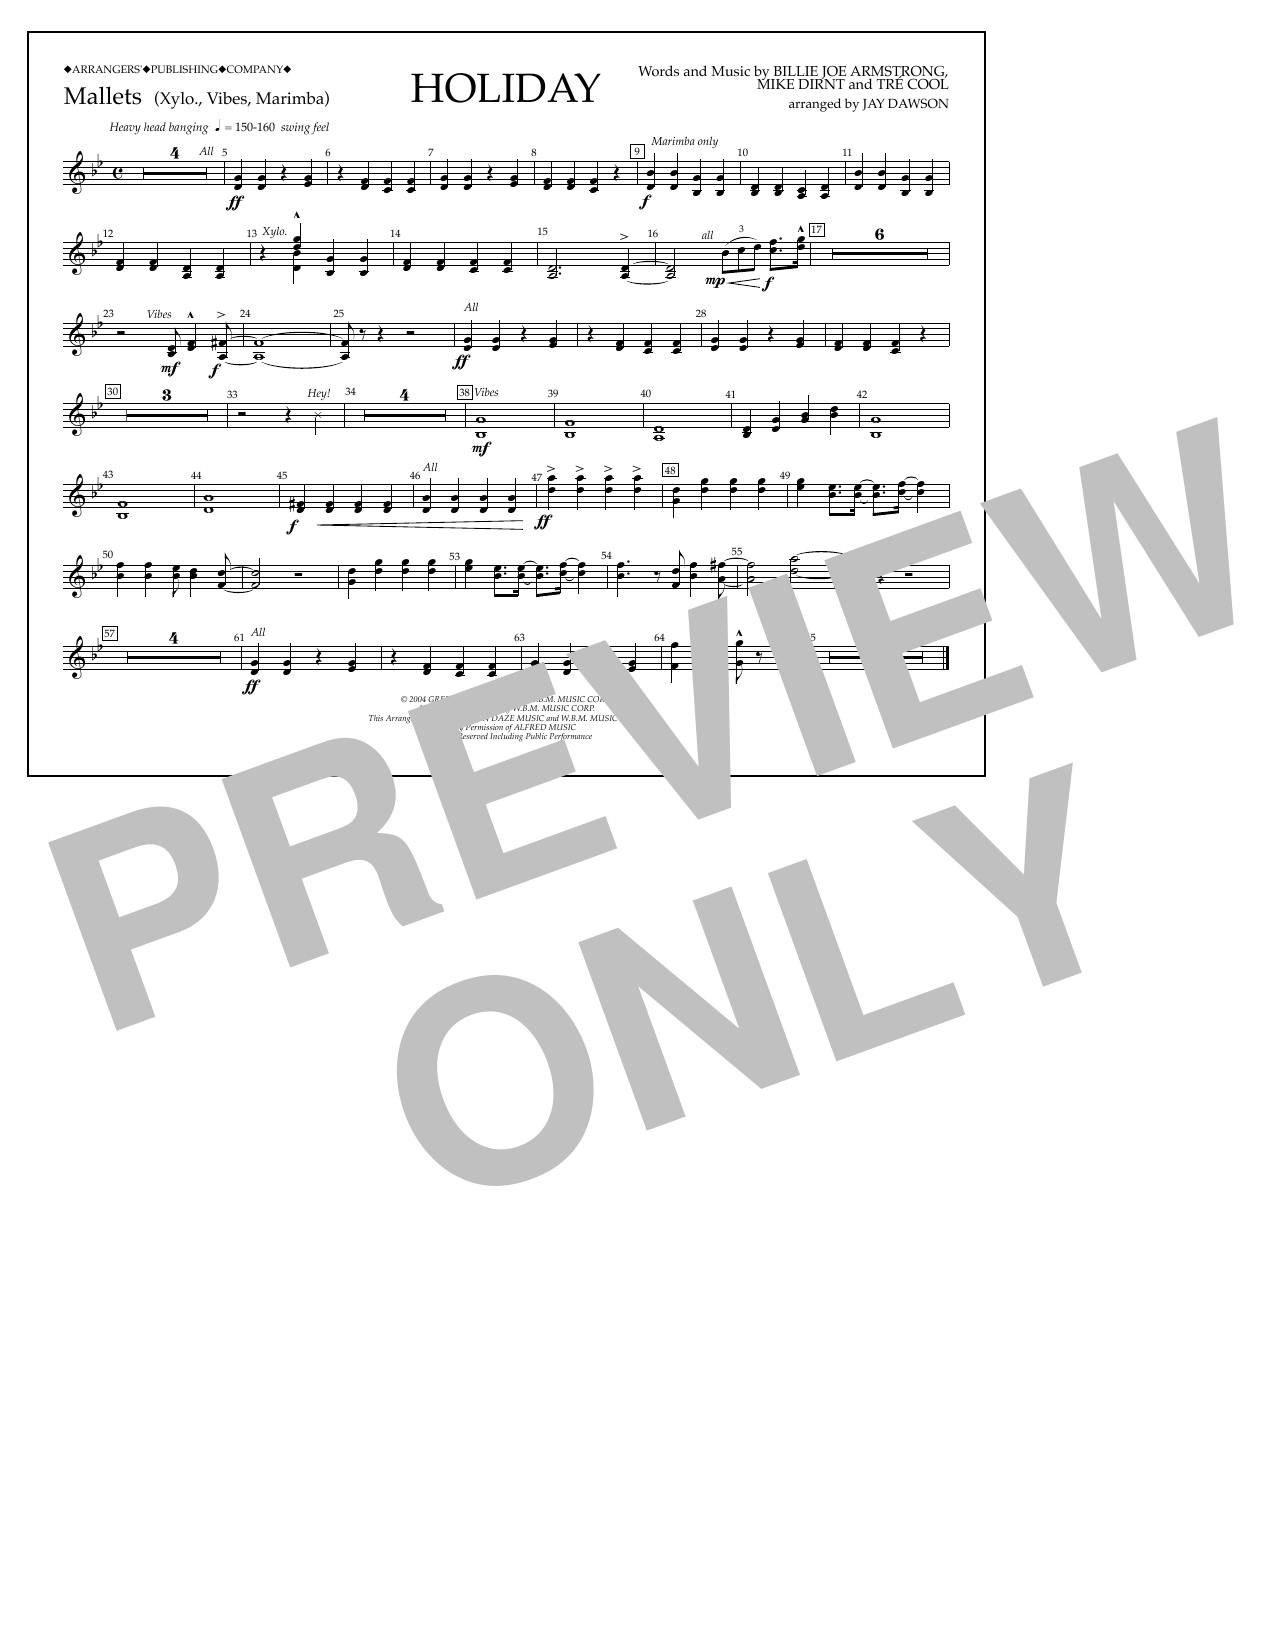 Holiday - Mallet Percussion Sheet Music